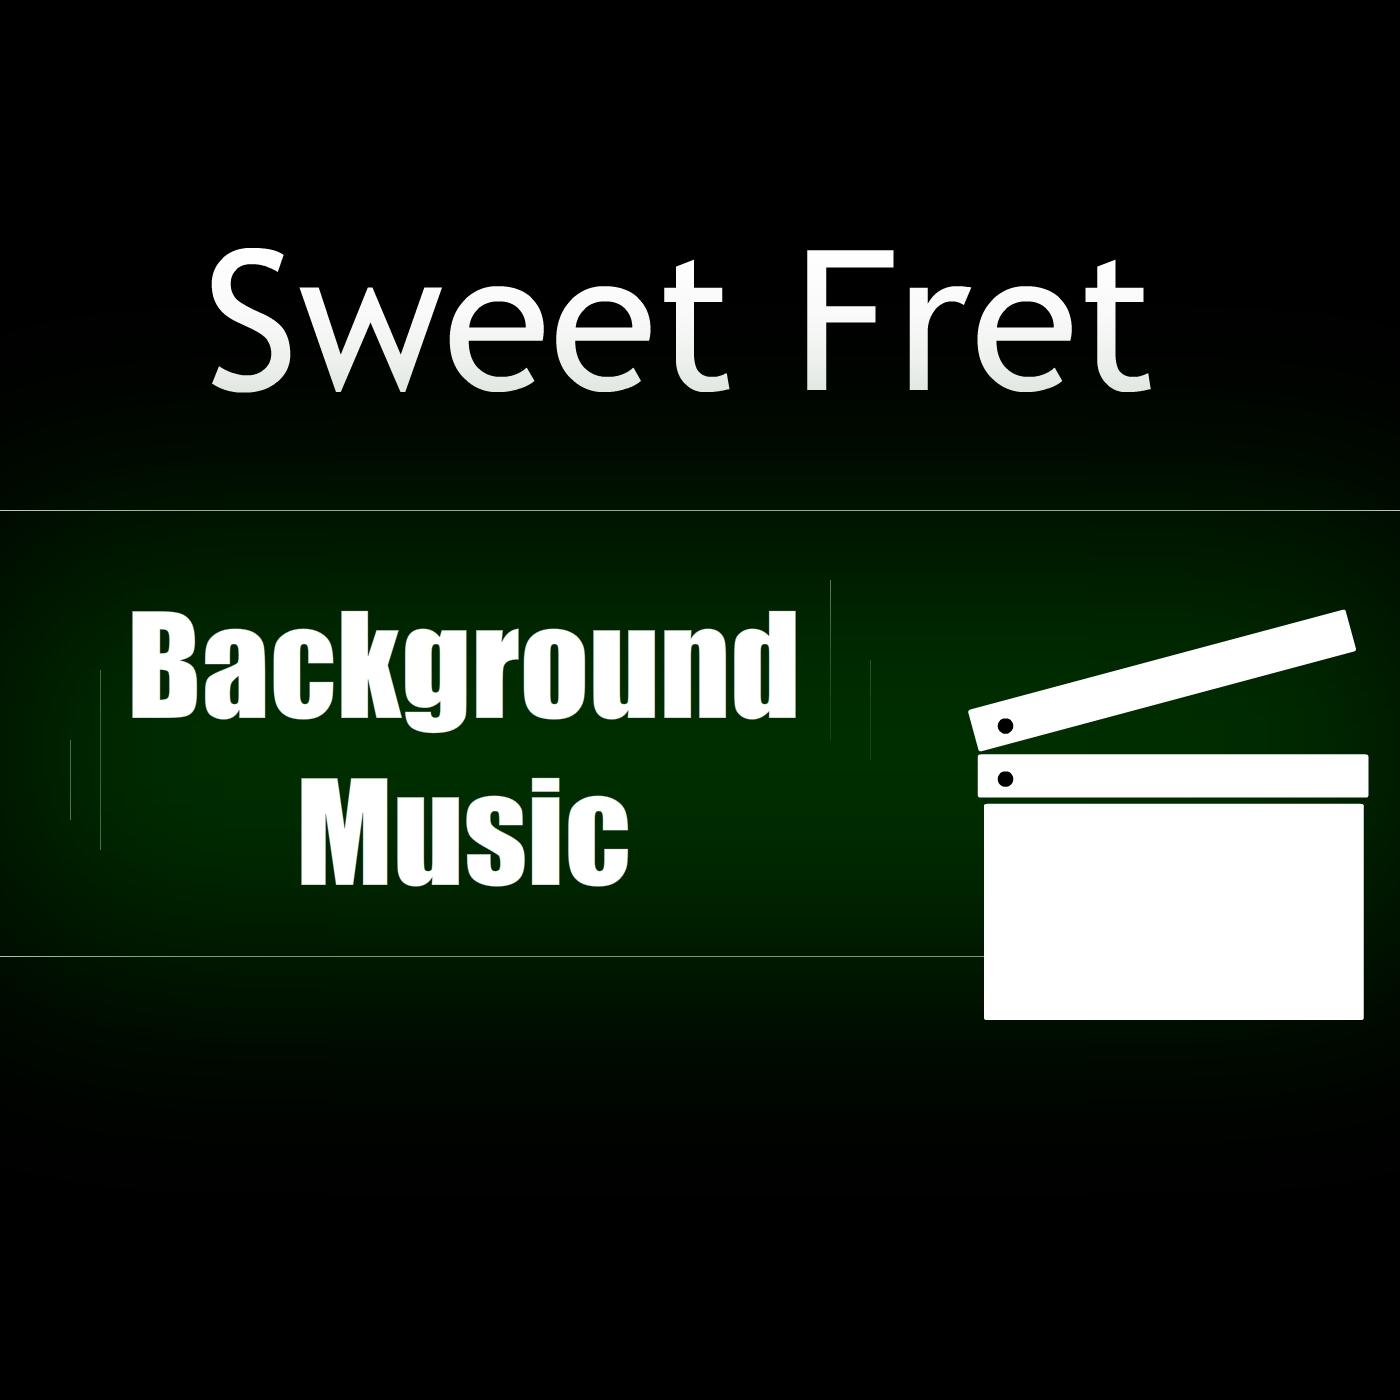 Royalty Free Royalty free background music